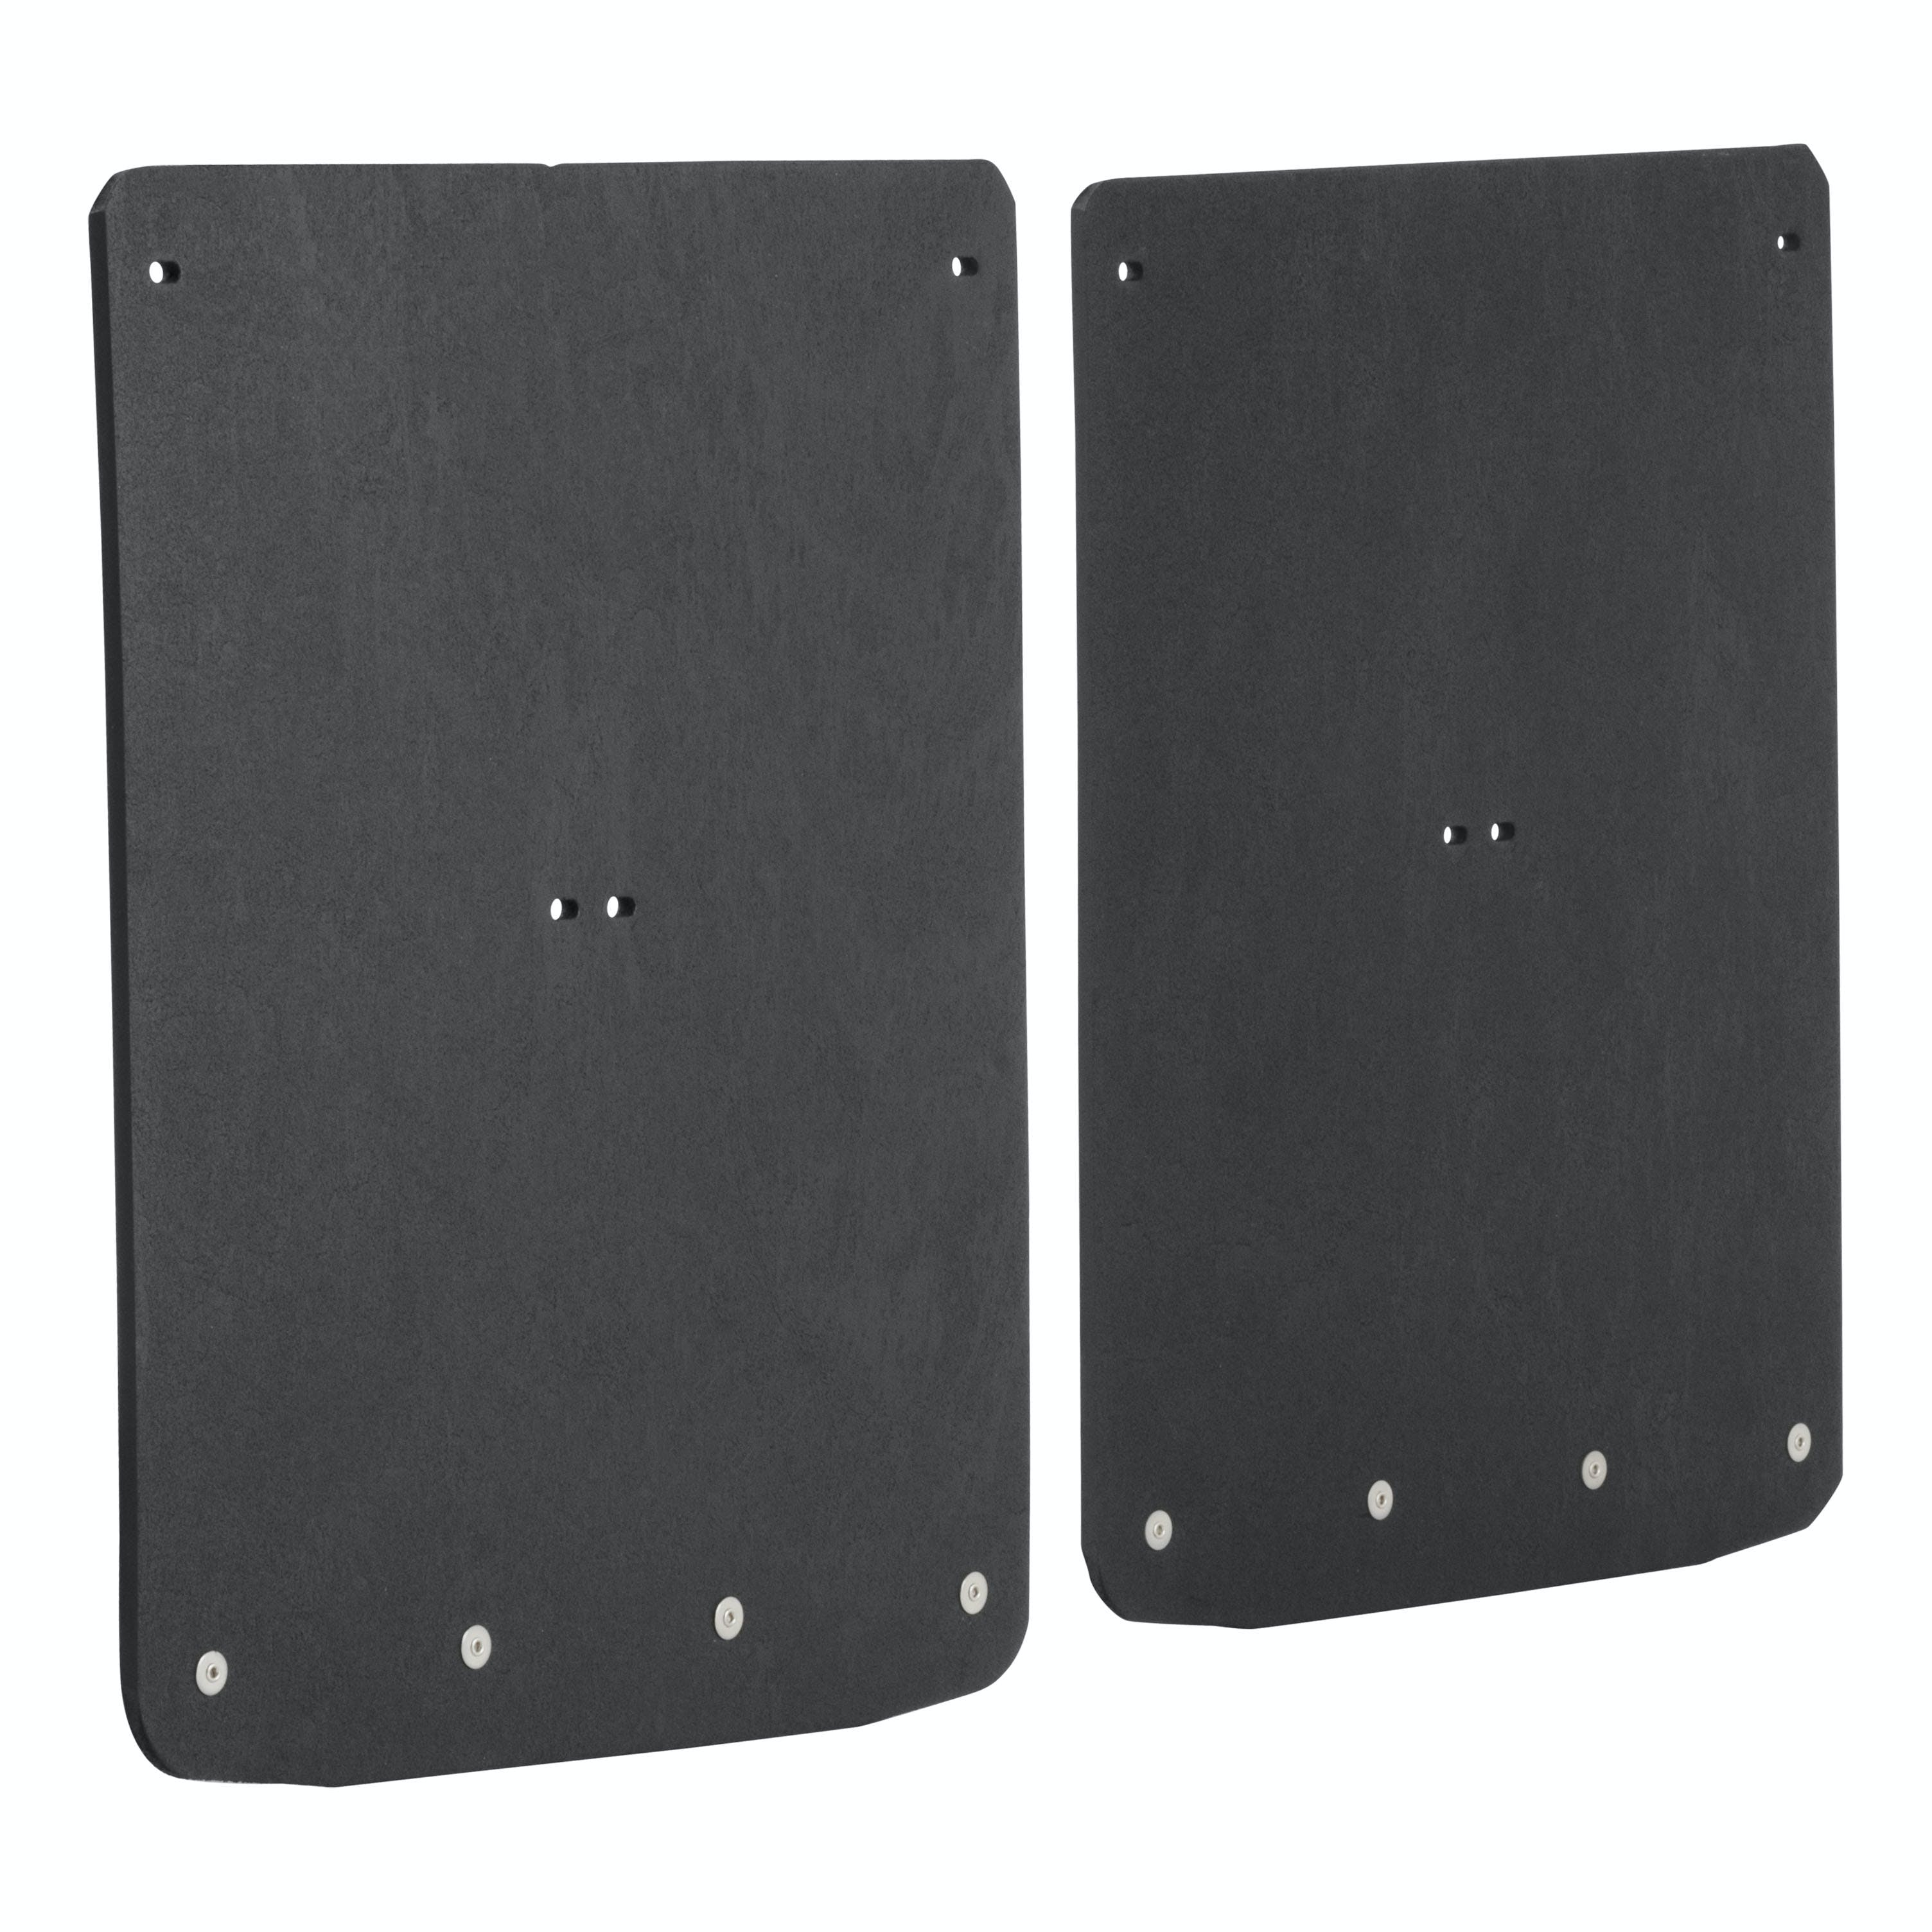 LUVERNE 251520 Front or Rear 12 x 20-Inch Textured Rubber Mud Guards Black 12 x 20 for for Select Ford F-150